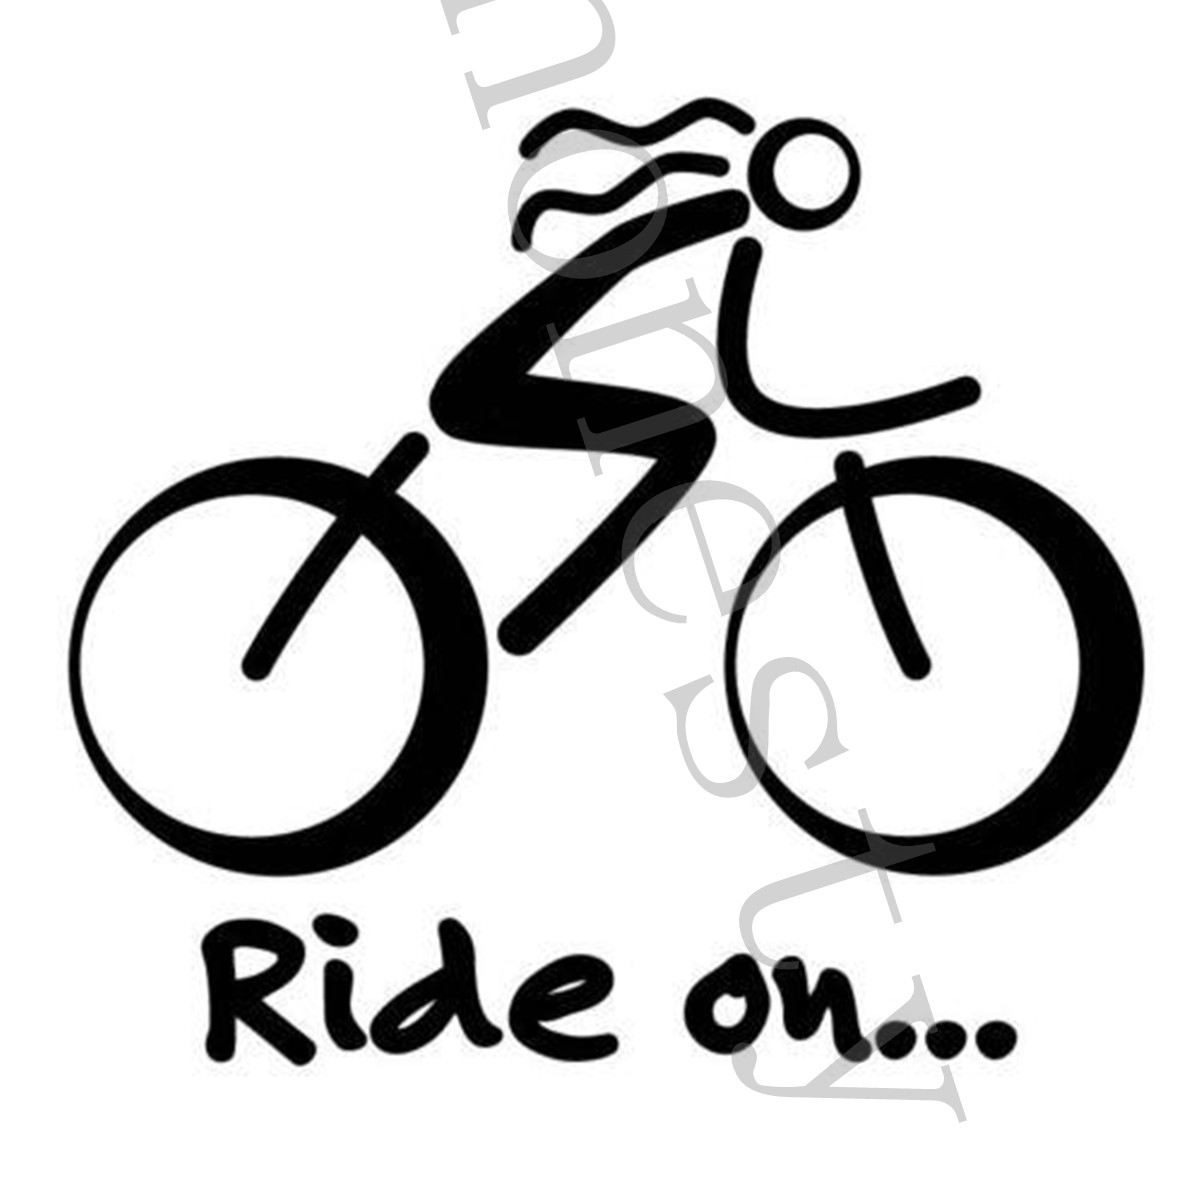 Details about bike sticker bicycle sport biking bike cycling car wall window decal sign vinyl